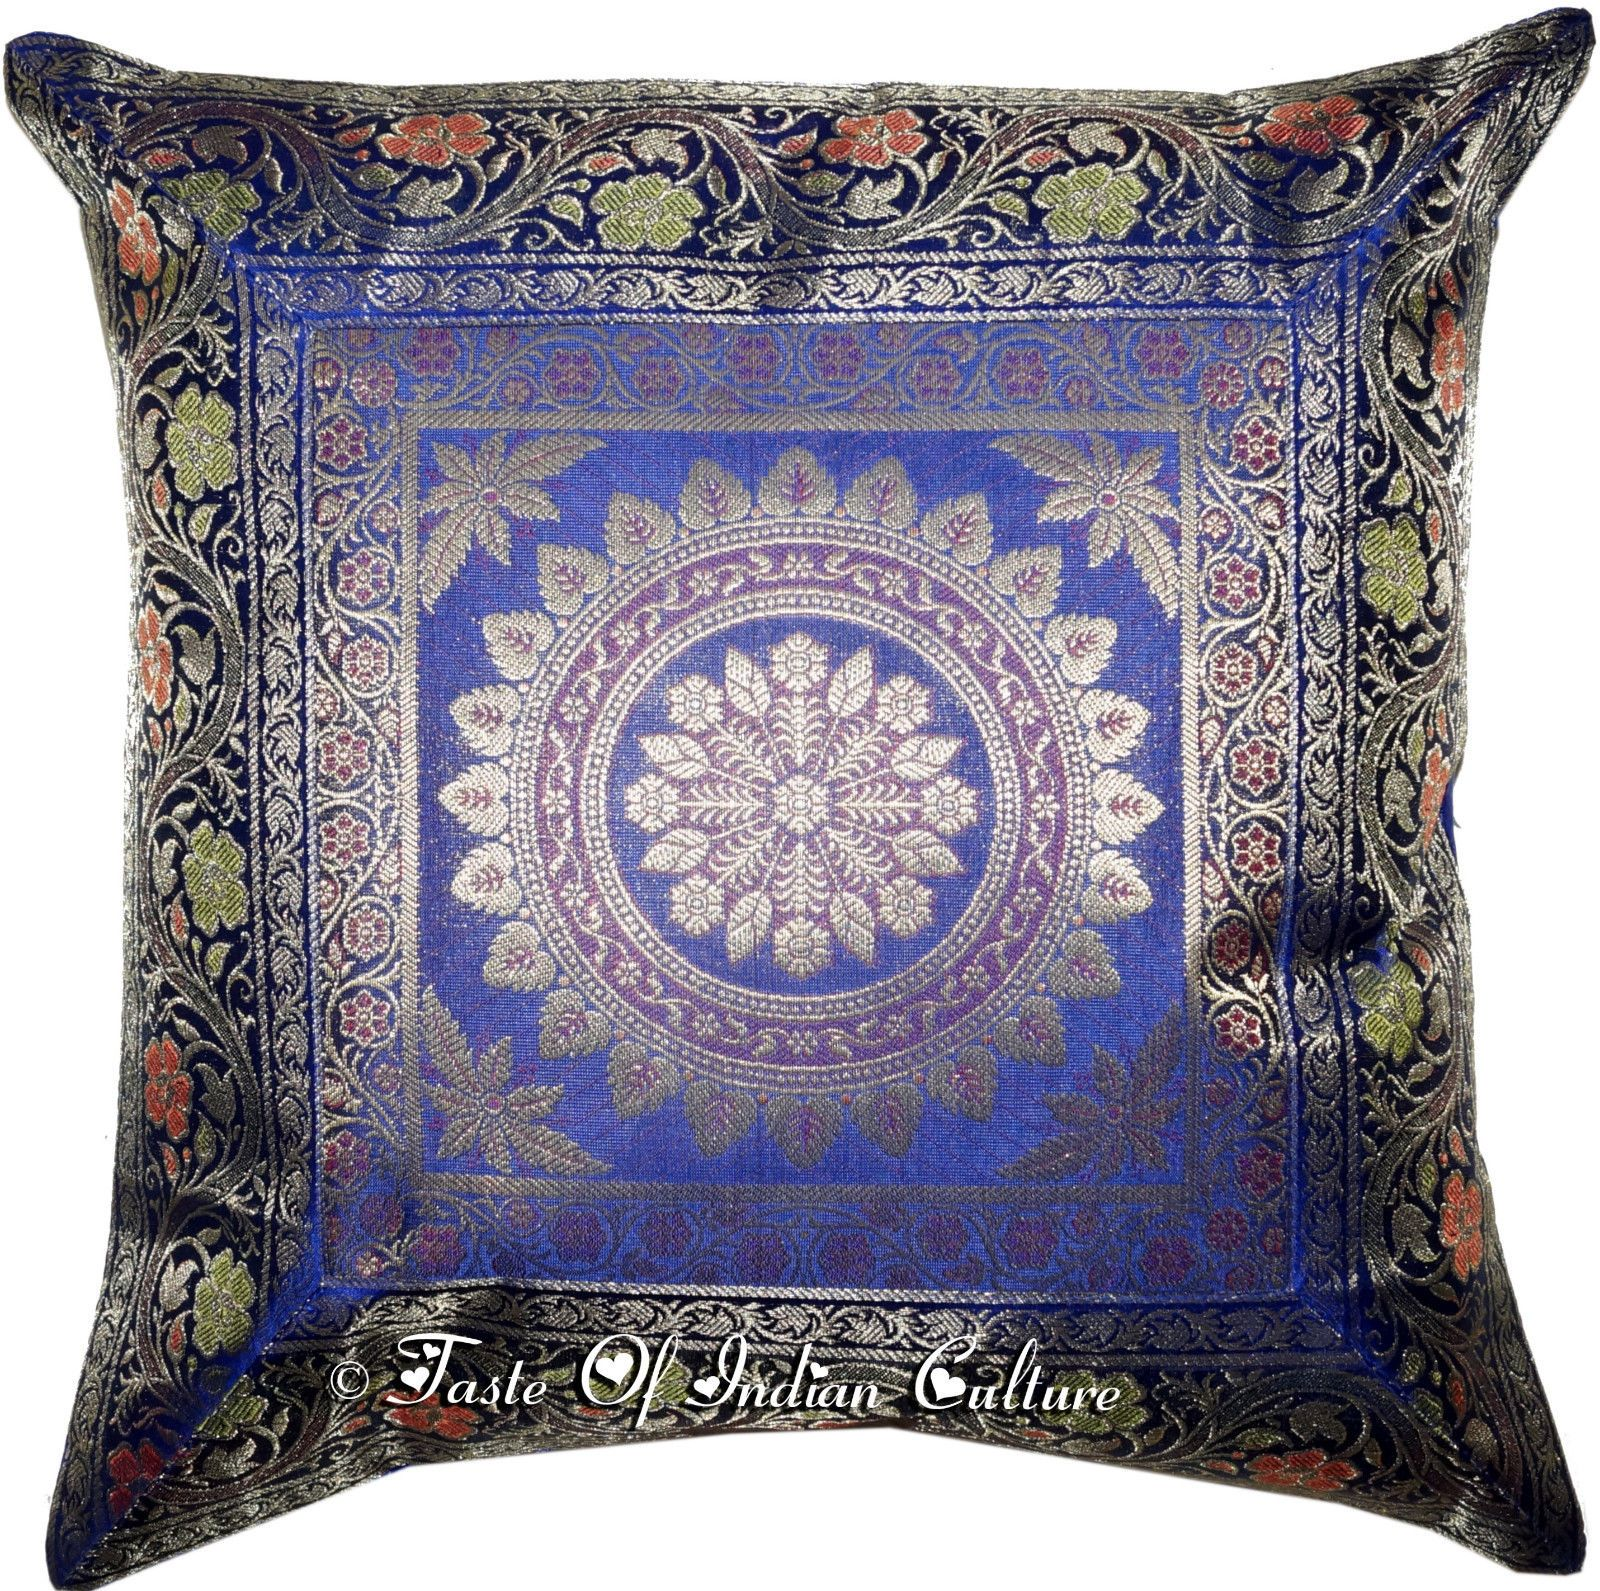 Details About Blue Mandala 17 Cushion Pillow Cover Handmade Toss